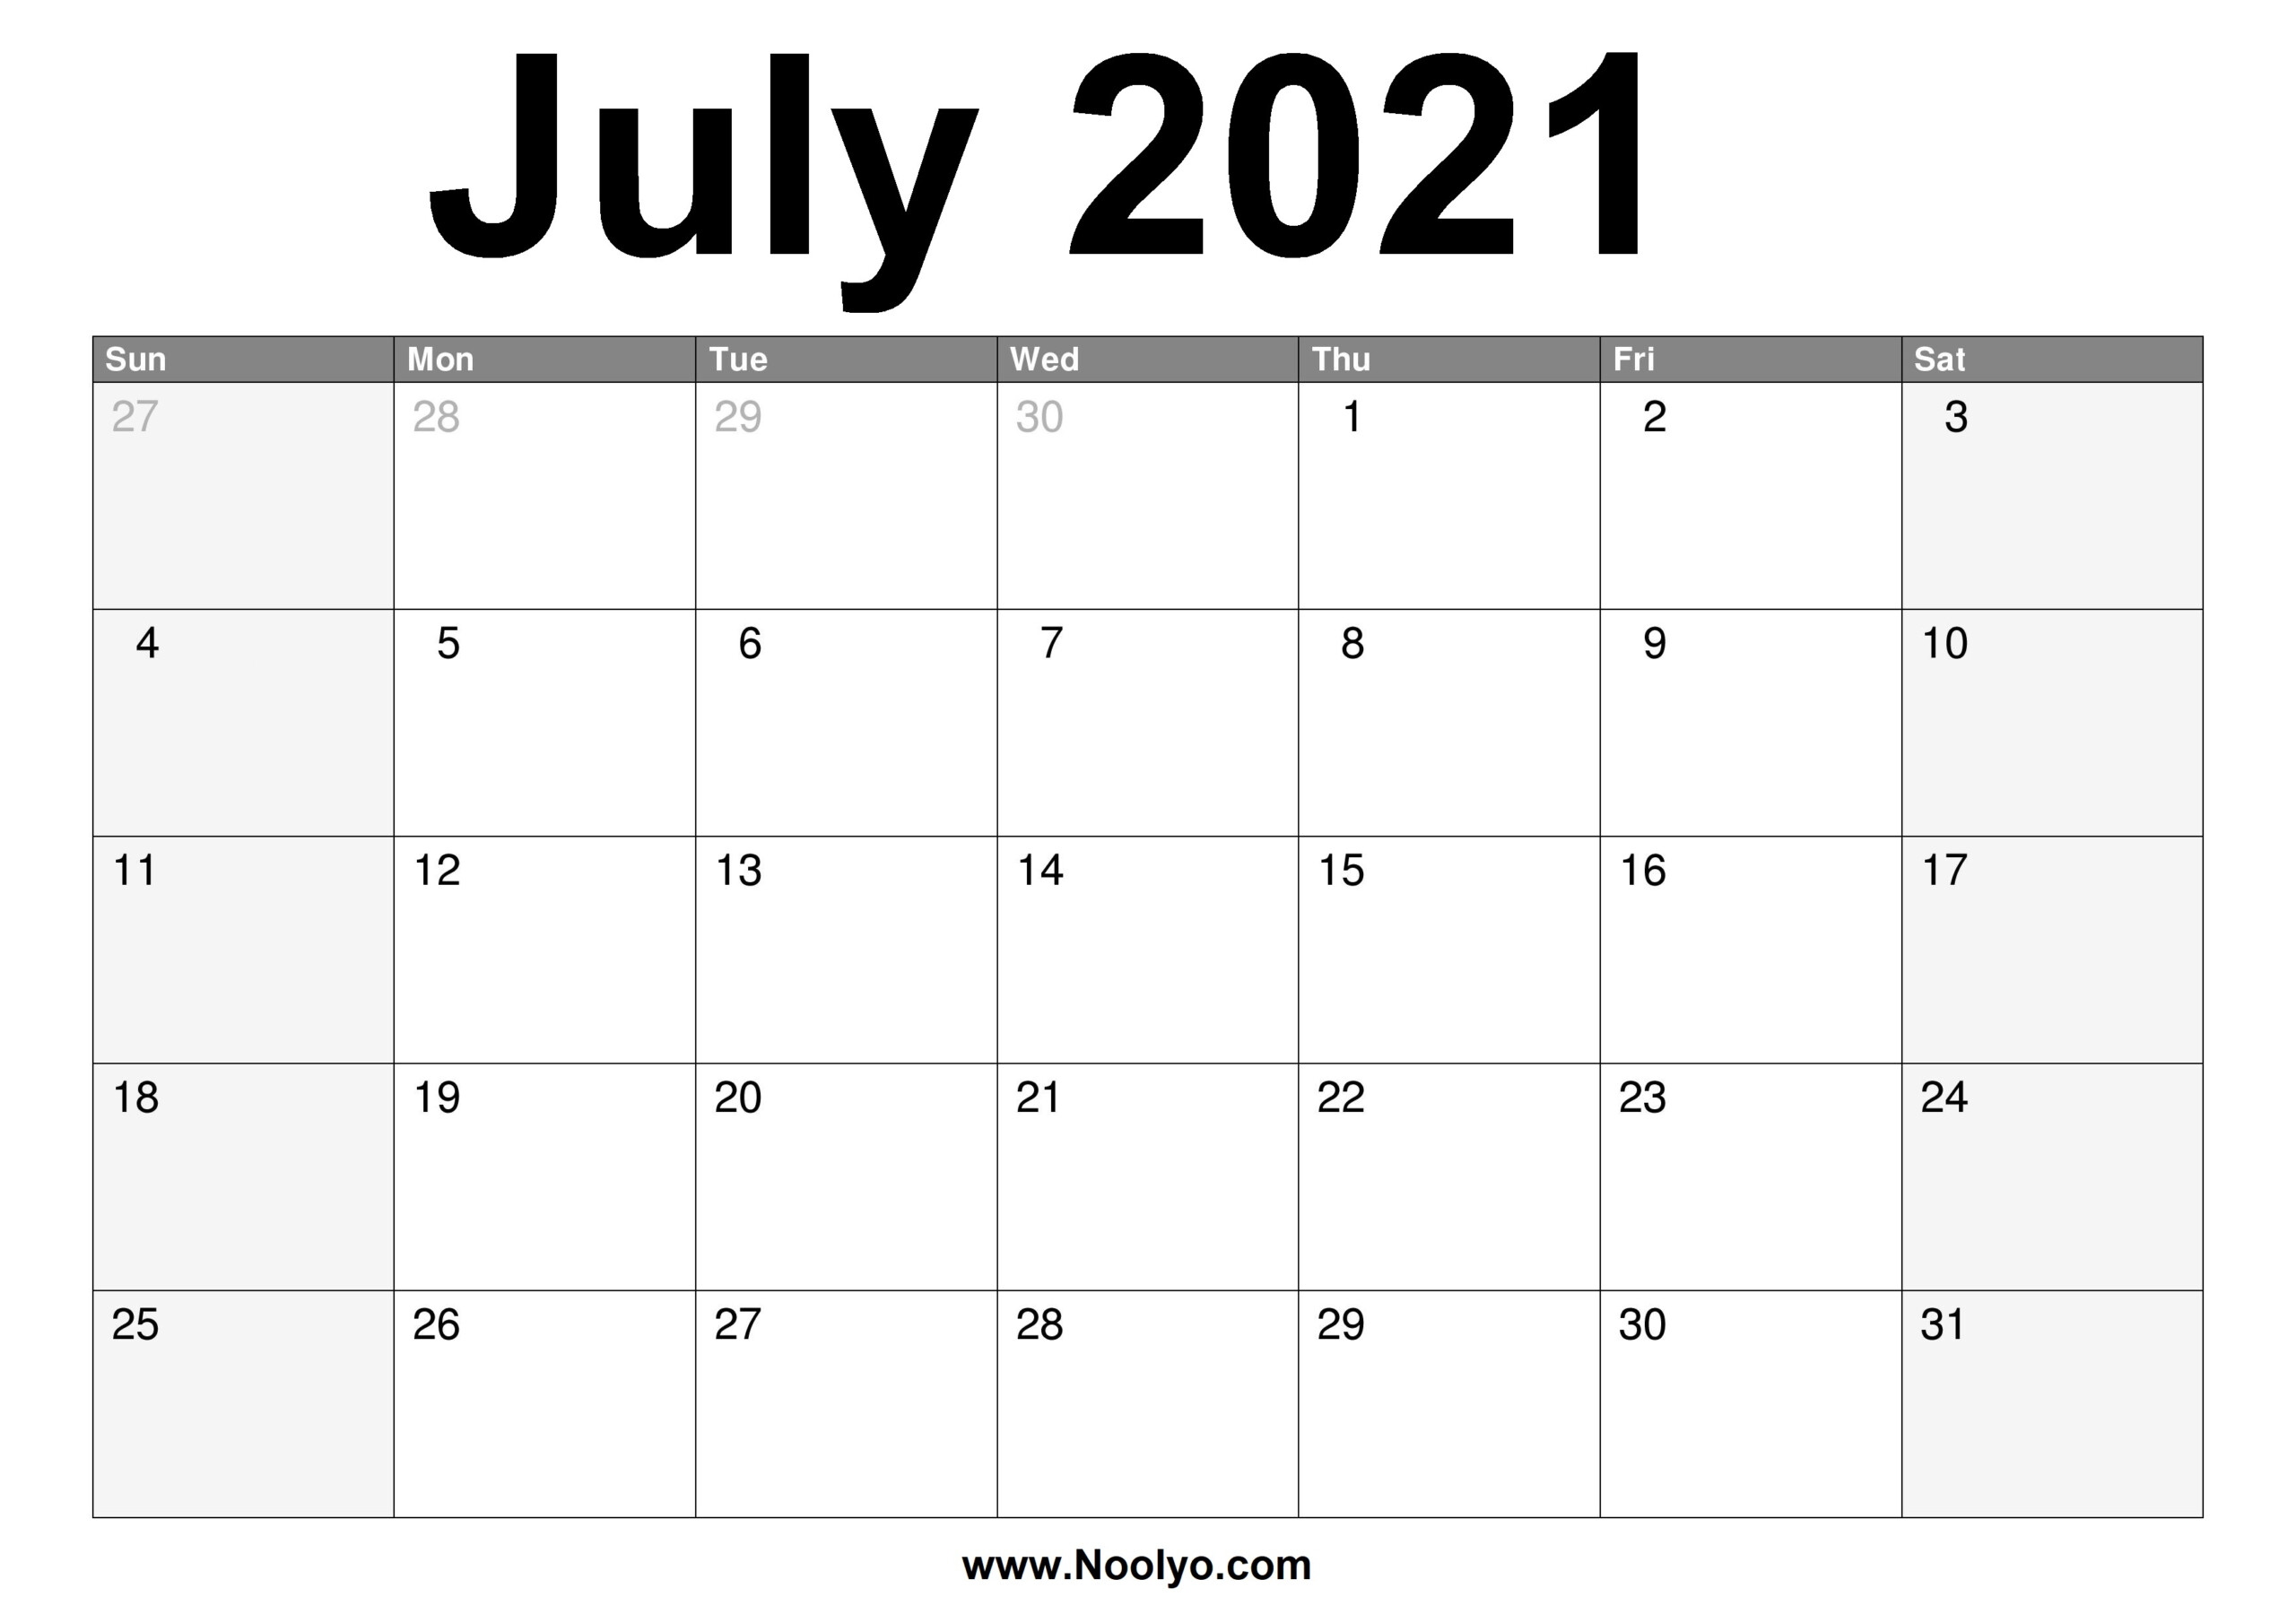 July 2021 Calendar Printable – Free Download – Noolyo